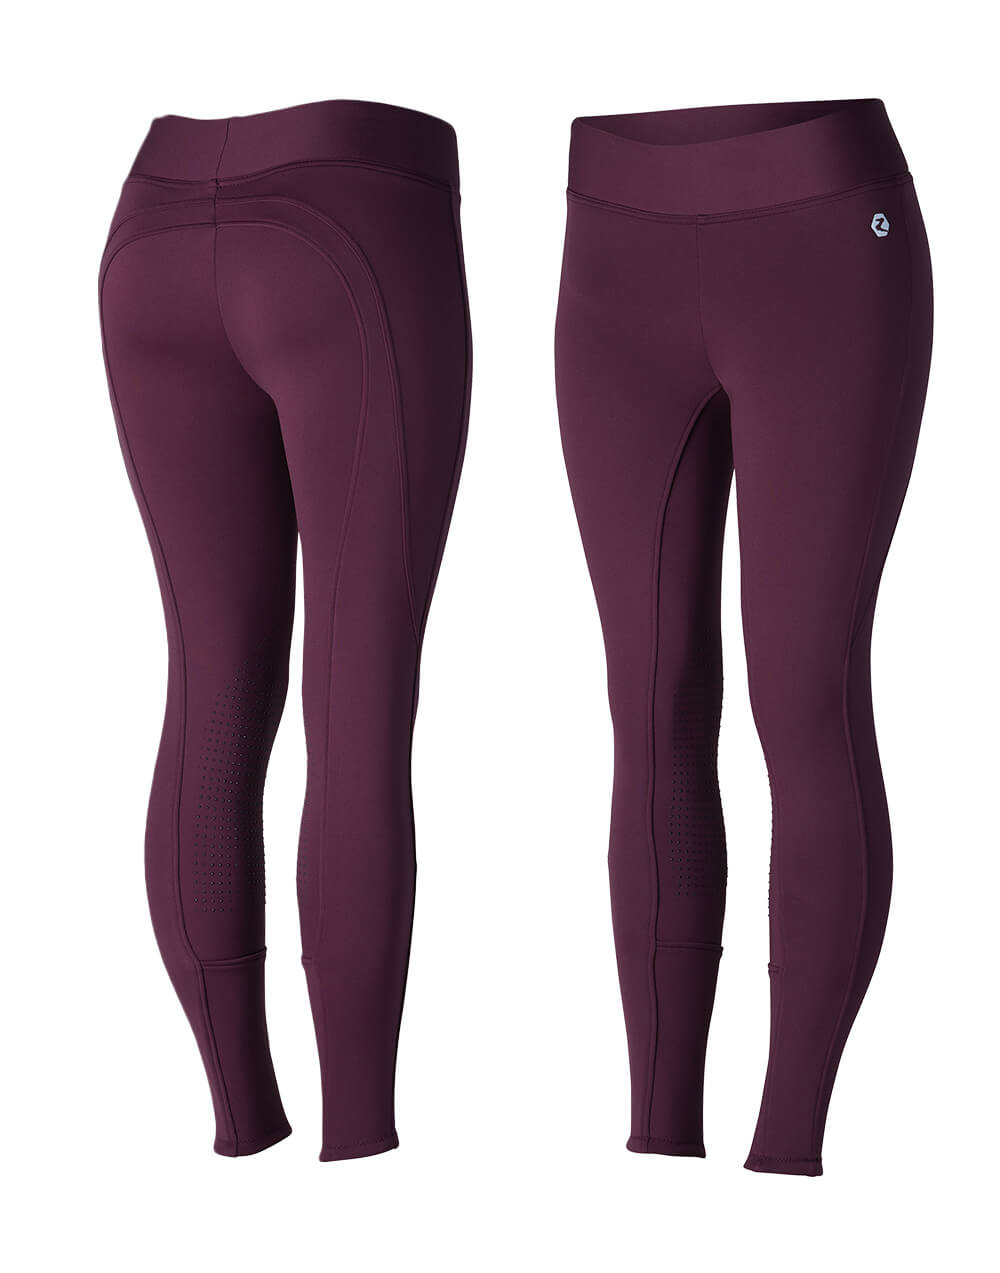 Silicone knee grip tights with fleece lining in eggplant dark purple